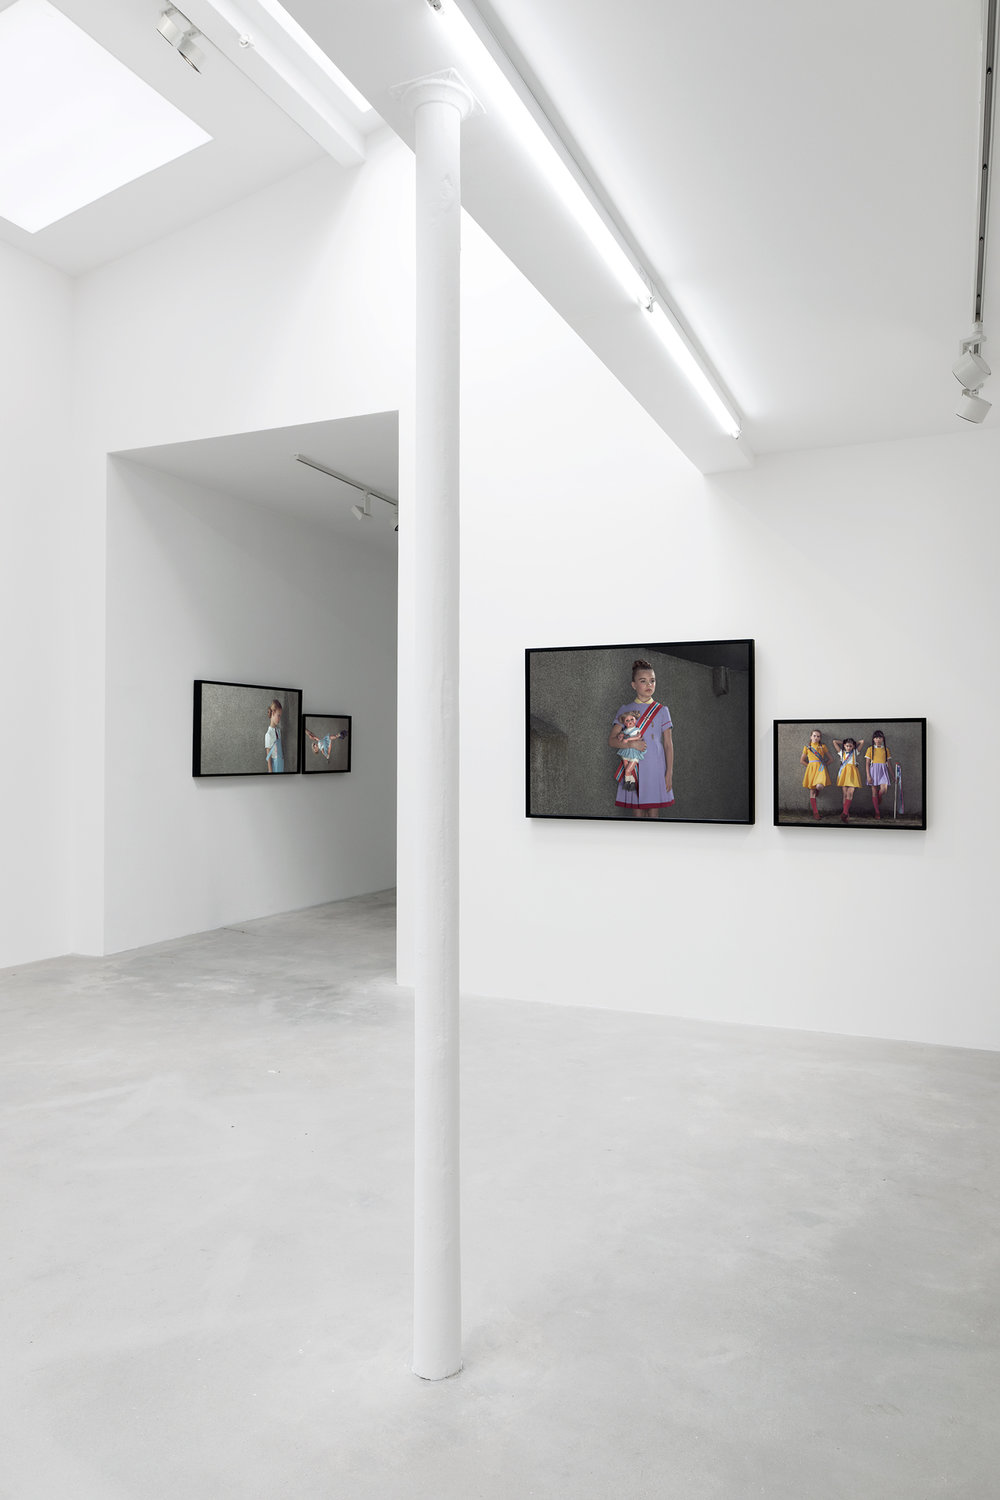 Erwin Olaf et Indochine, Galerie Rabouan Moussion